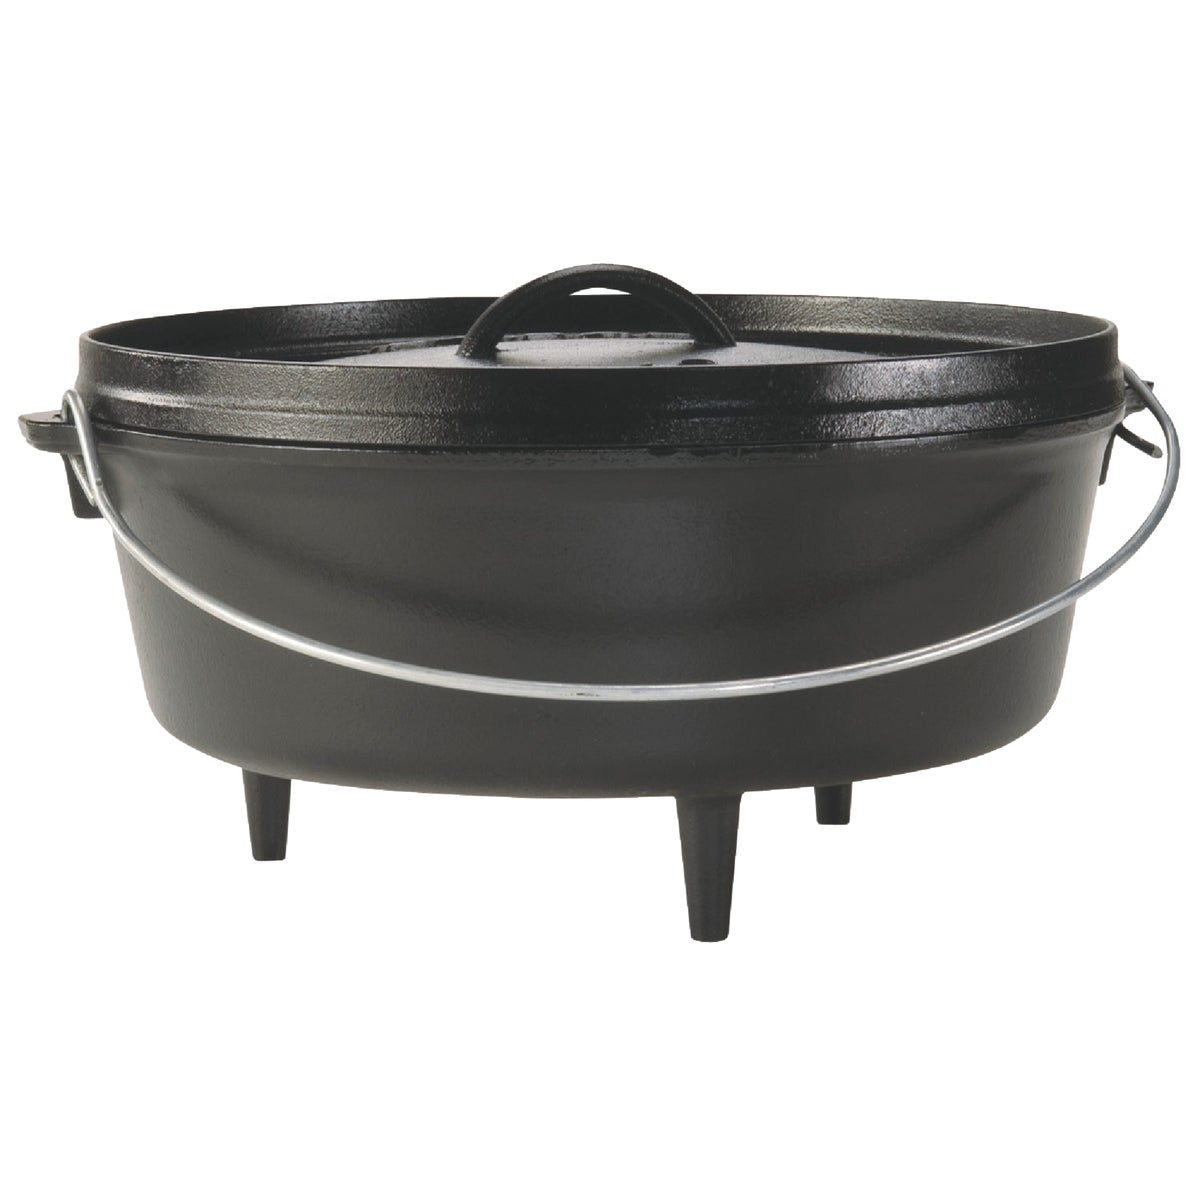 6QT CAMP OVEN - L12C03 by Lodge Mfg Co